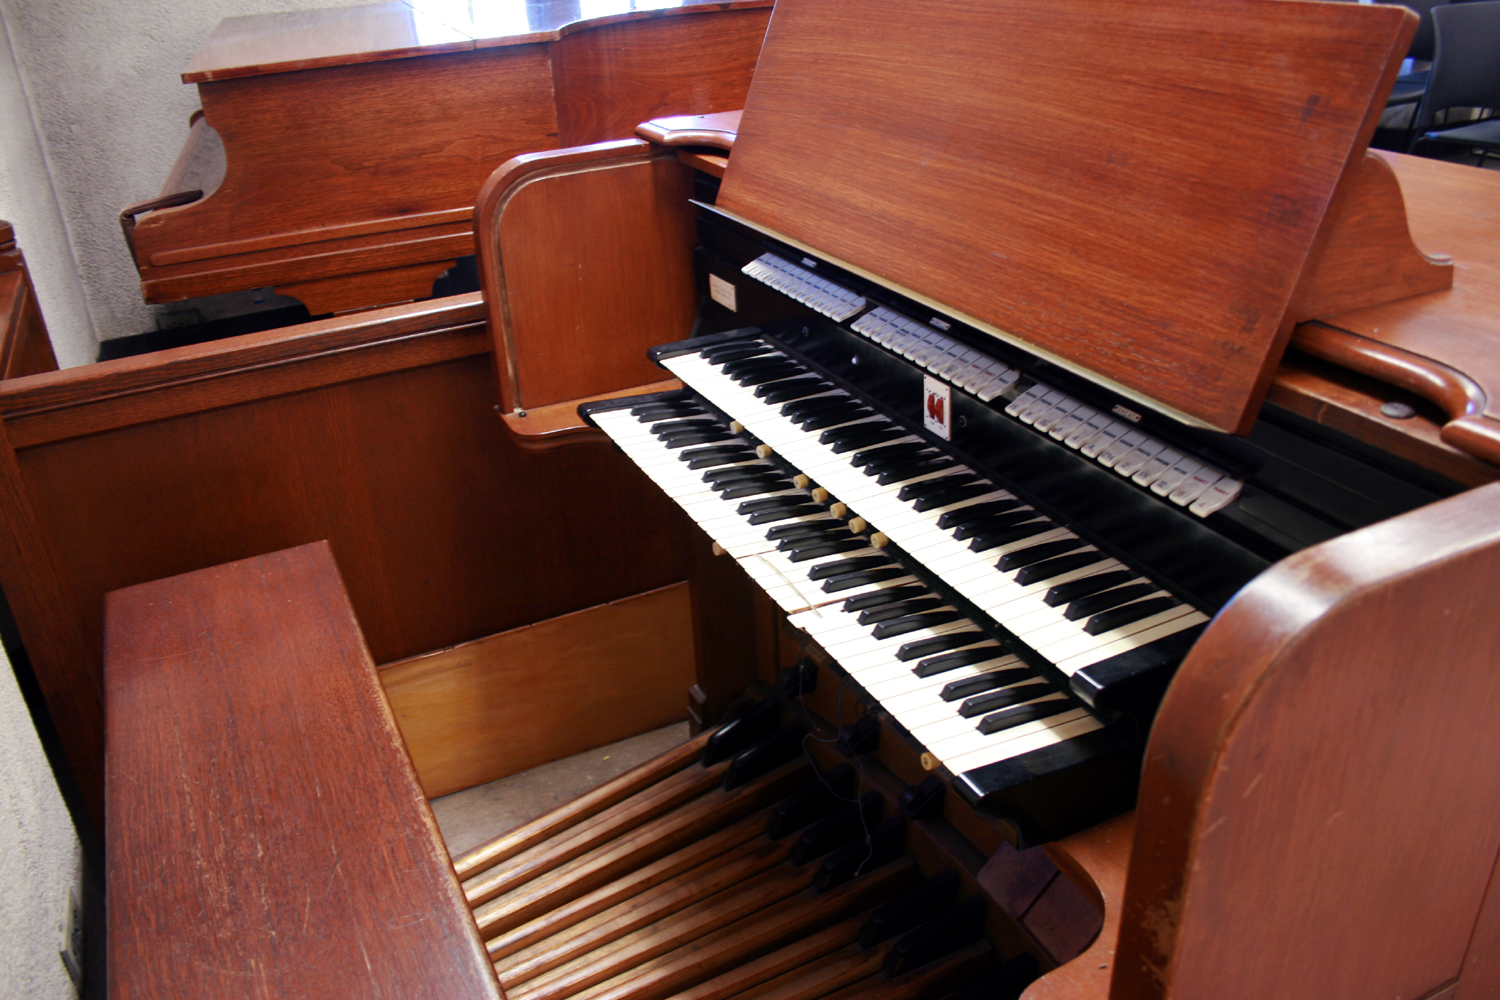 Austin Organ, Op. 2327 (1960) in the Chapel of the Cross in The Riverside Church - New York City (photo: Steven E. Lawson)